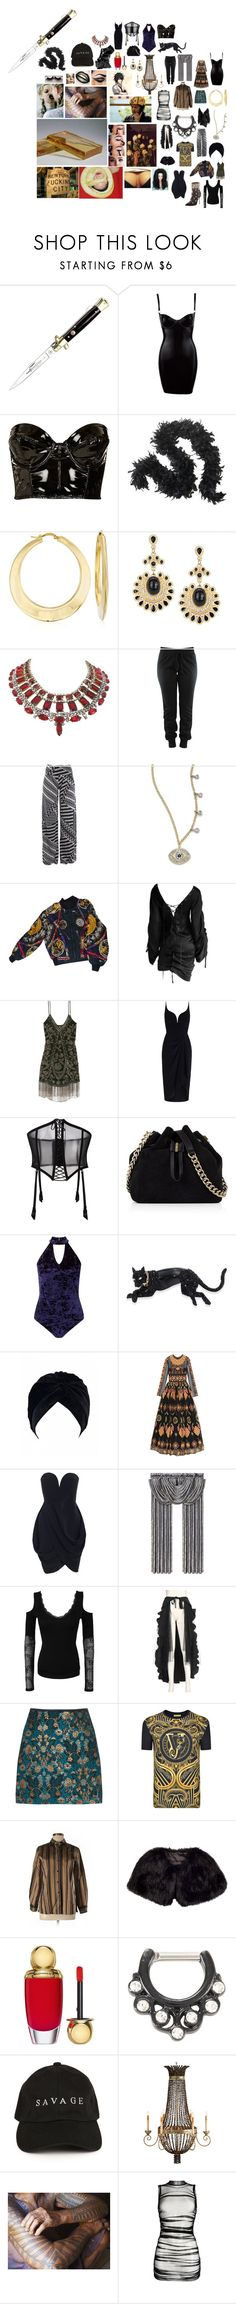 """rahzi"" by astral-leech ❤ liked on Polyvore featuring Topshop, Ross-Simons, Meira T, Hermès, Tom Ford, Haute Hippie, Zimmermann, FOLIES BY RENAUD, Karen Millen and Miss Selfridge"